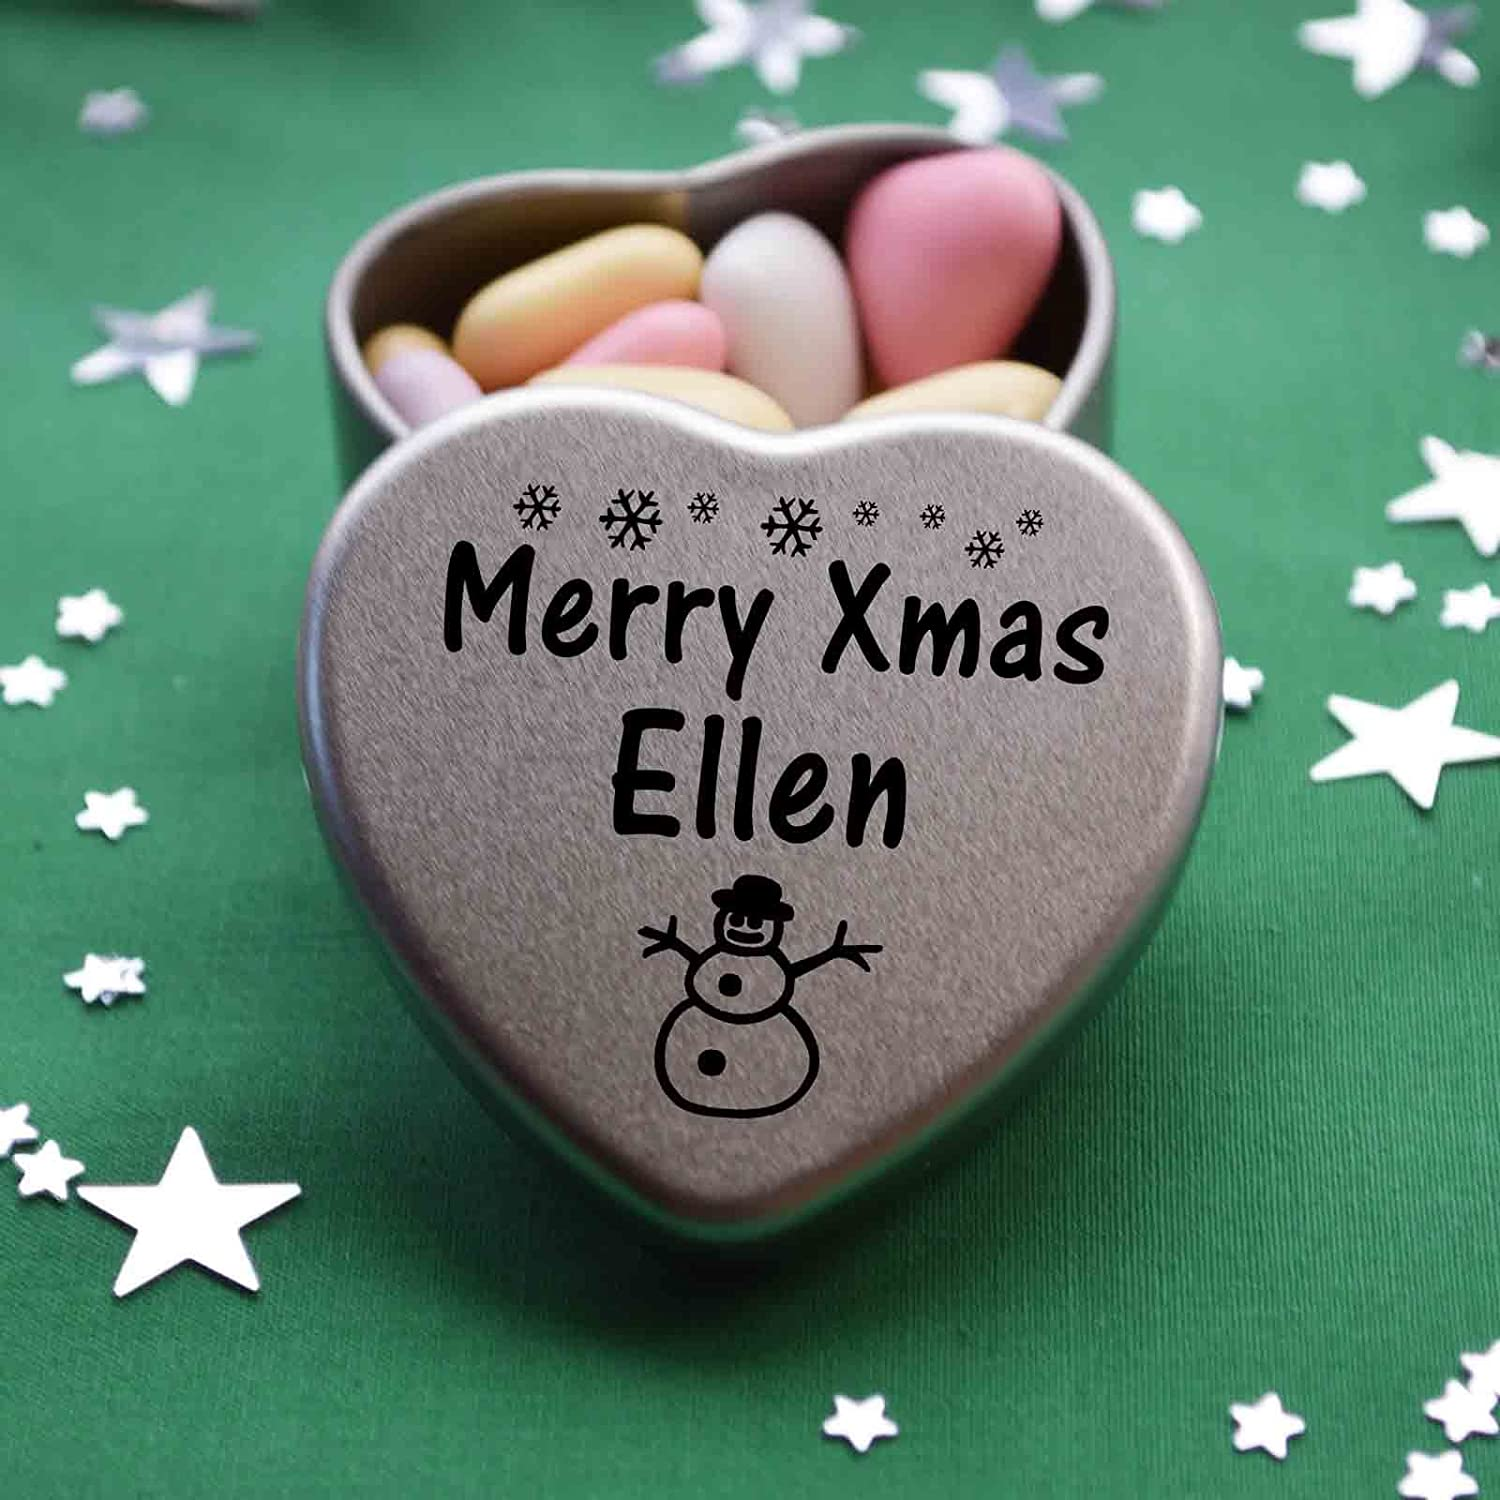 Merry Xmas Ellen Mini Heart Gift Tin with Chocolates Fits Beautifully in the palm of your hand. Great Christmas Present for Ellen Makes the perfect Stocking Filler or Card alternative. Tin Dimensions 45mmx45mmx20mm. Three designs Available, Father Christm